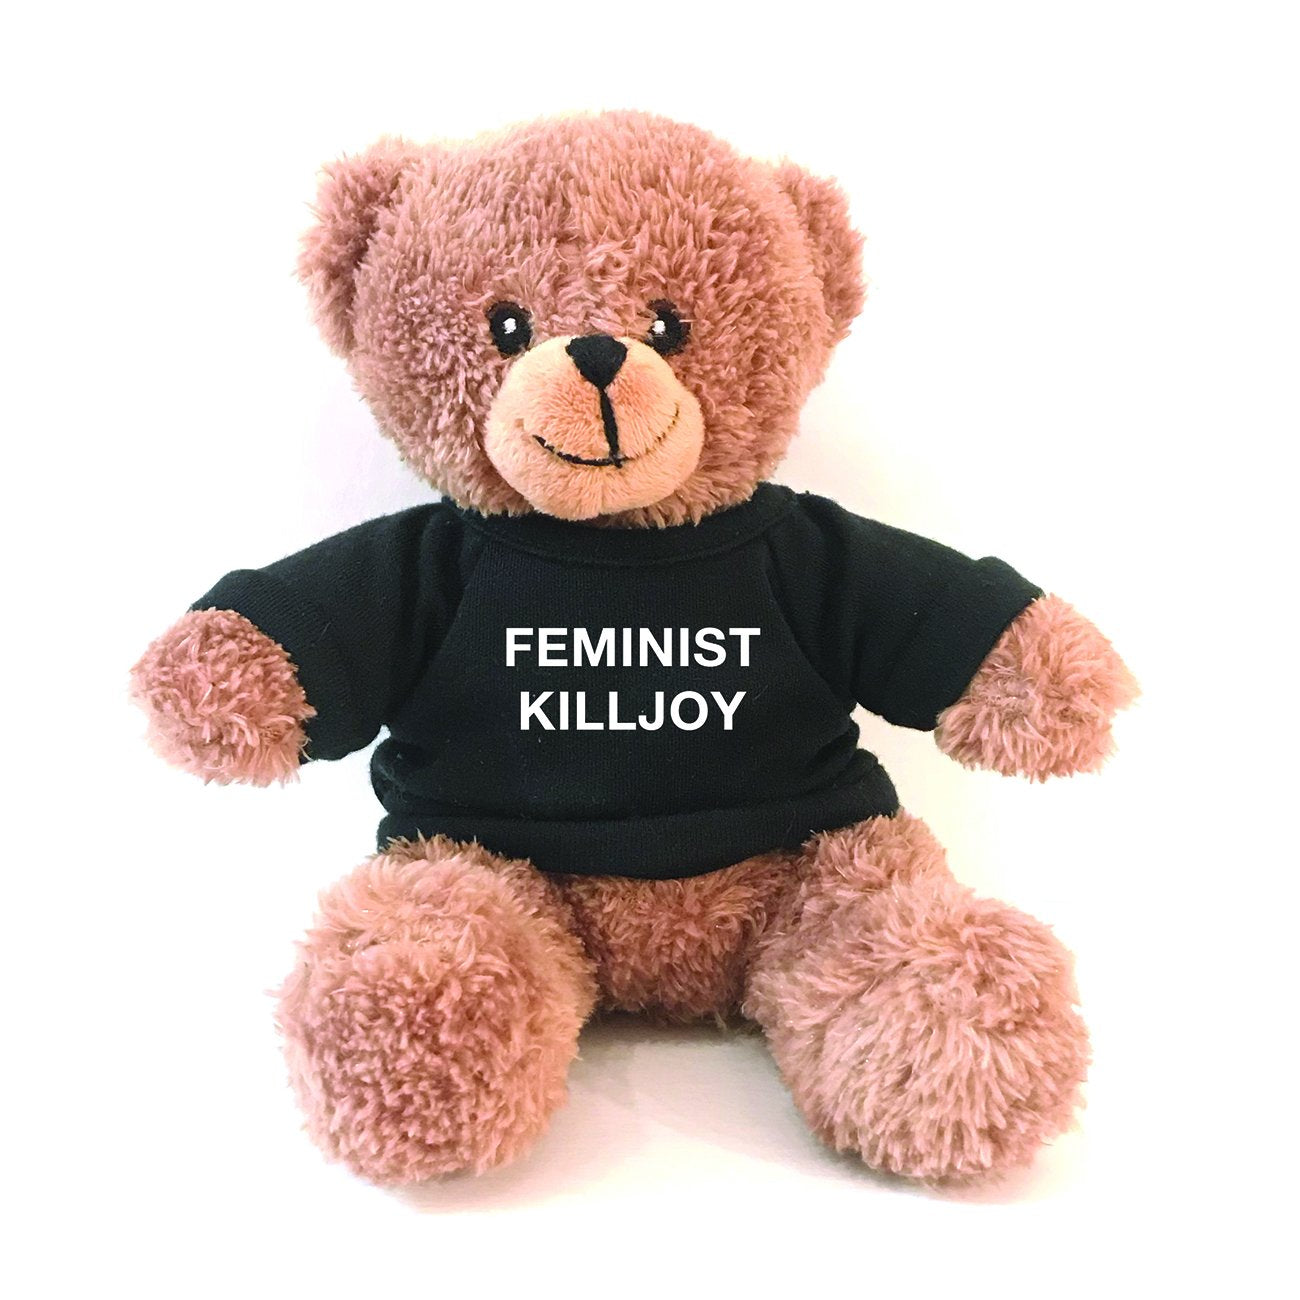 Teddy - Feminist Killjoy